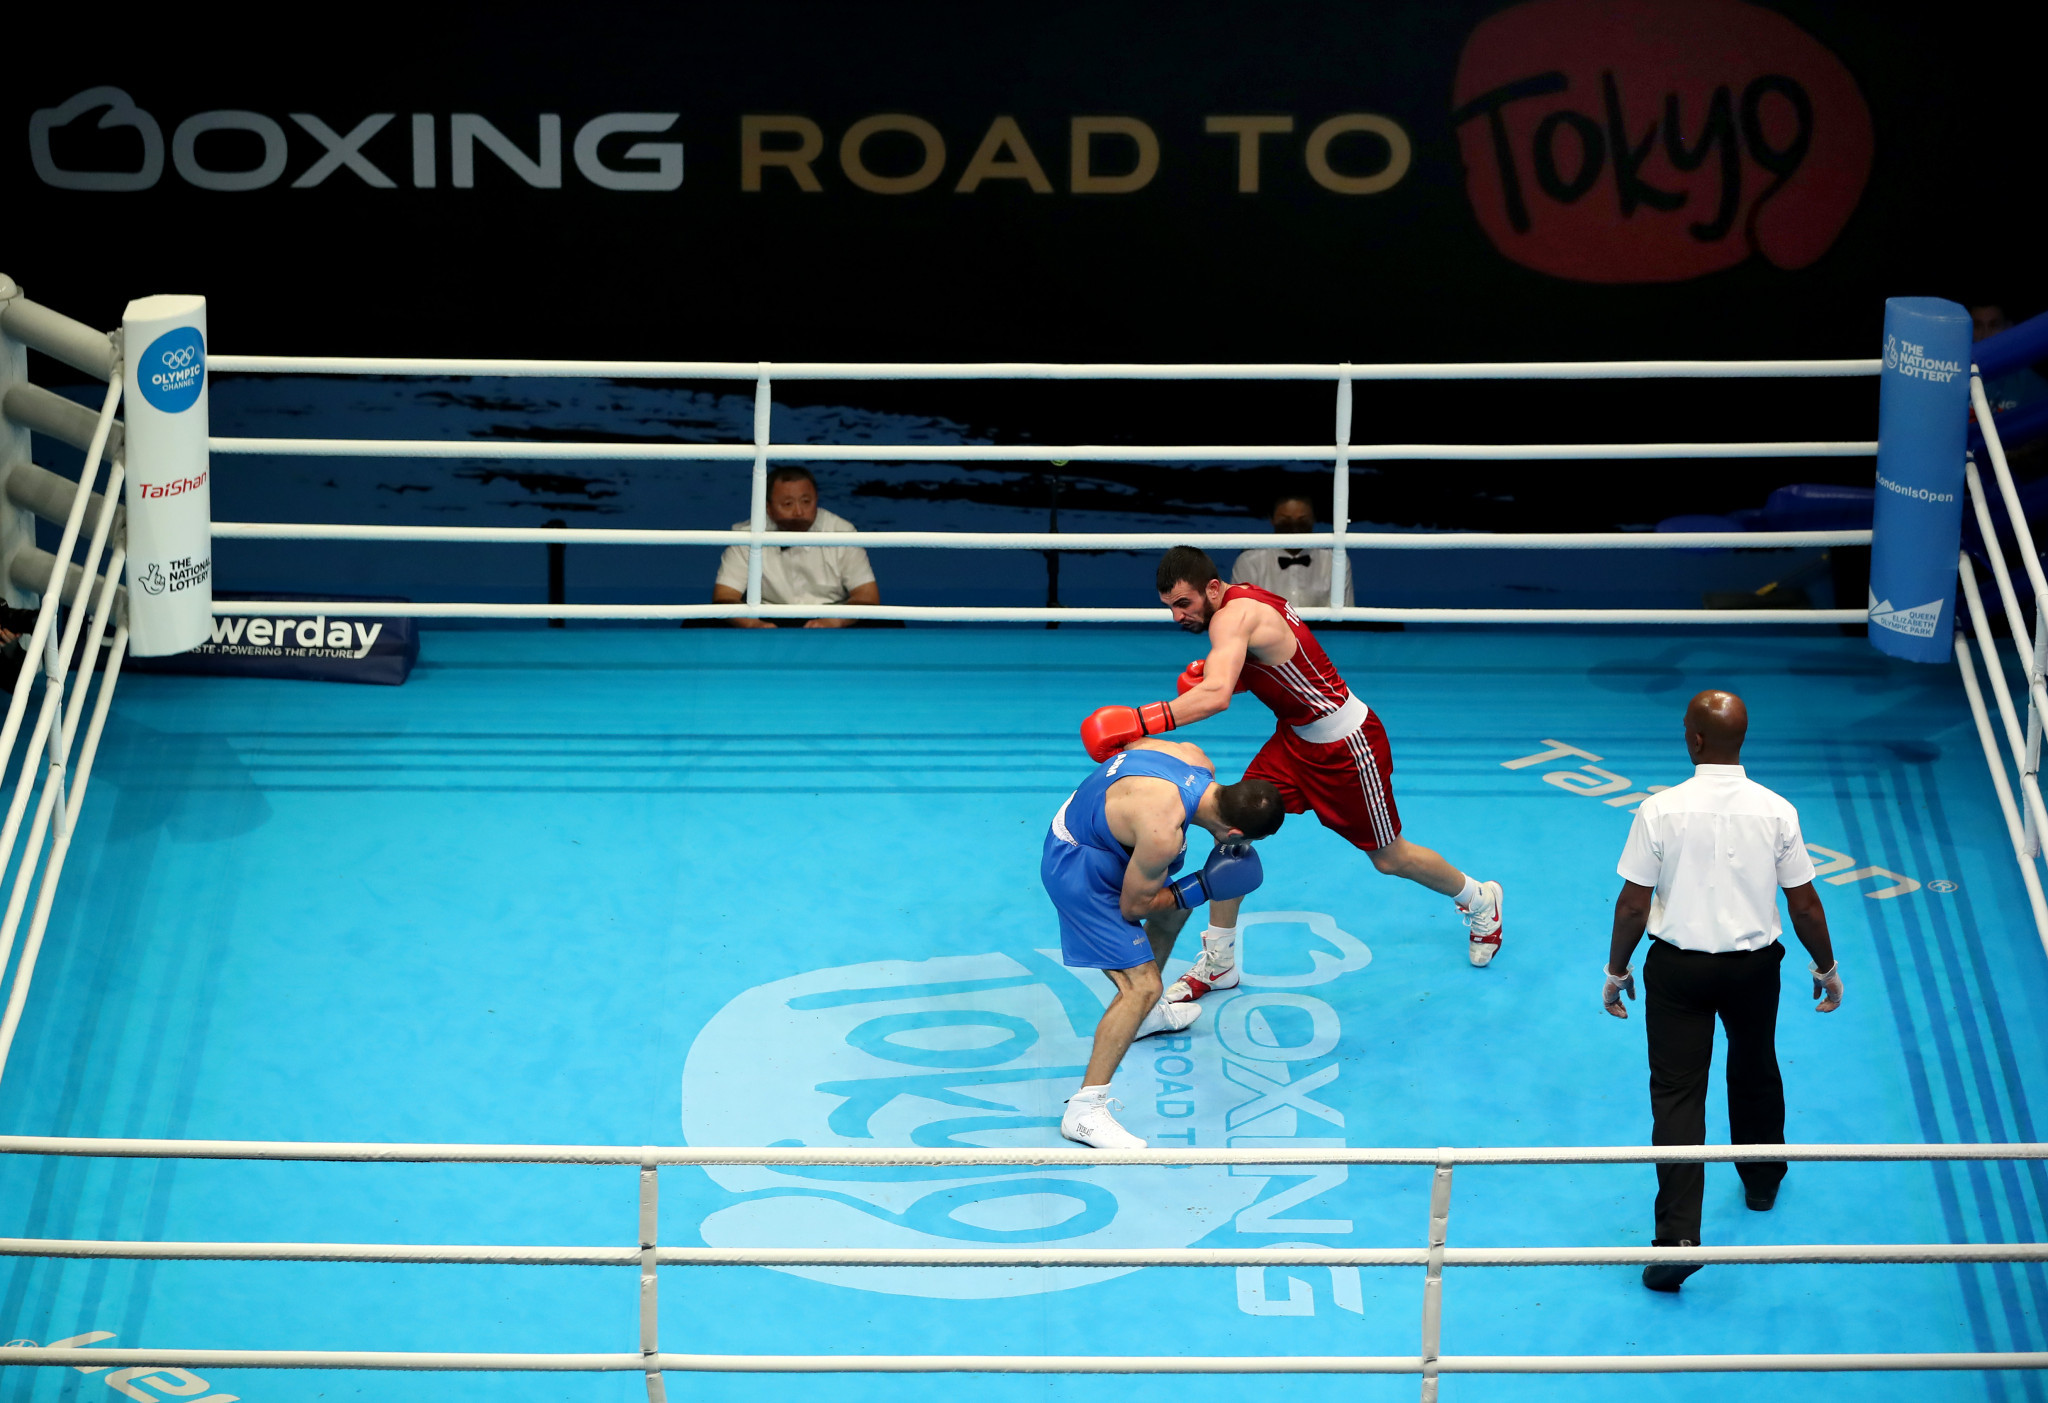 The European Olympic boxing qualifying tournament for Tokyo 2020 is expected to resume at the point where it was halted in April 2021 ©Getty Images